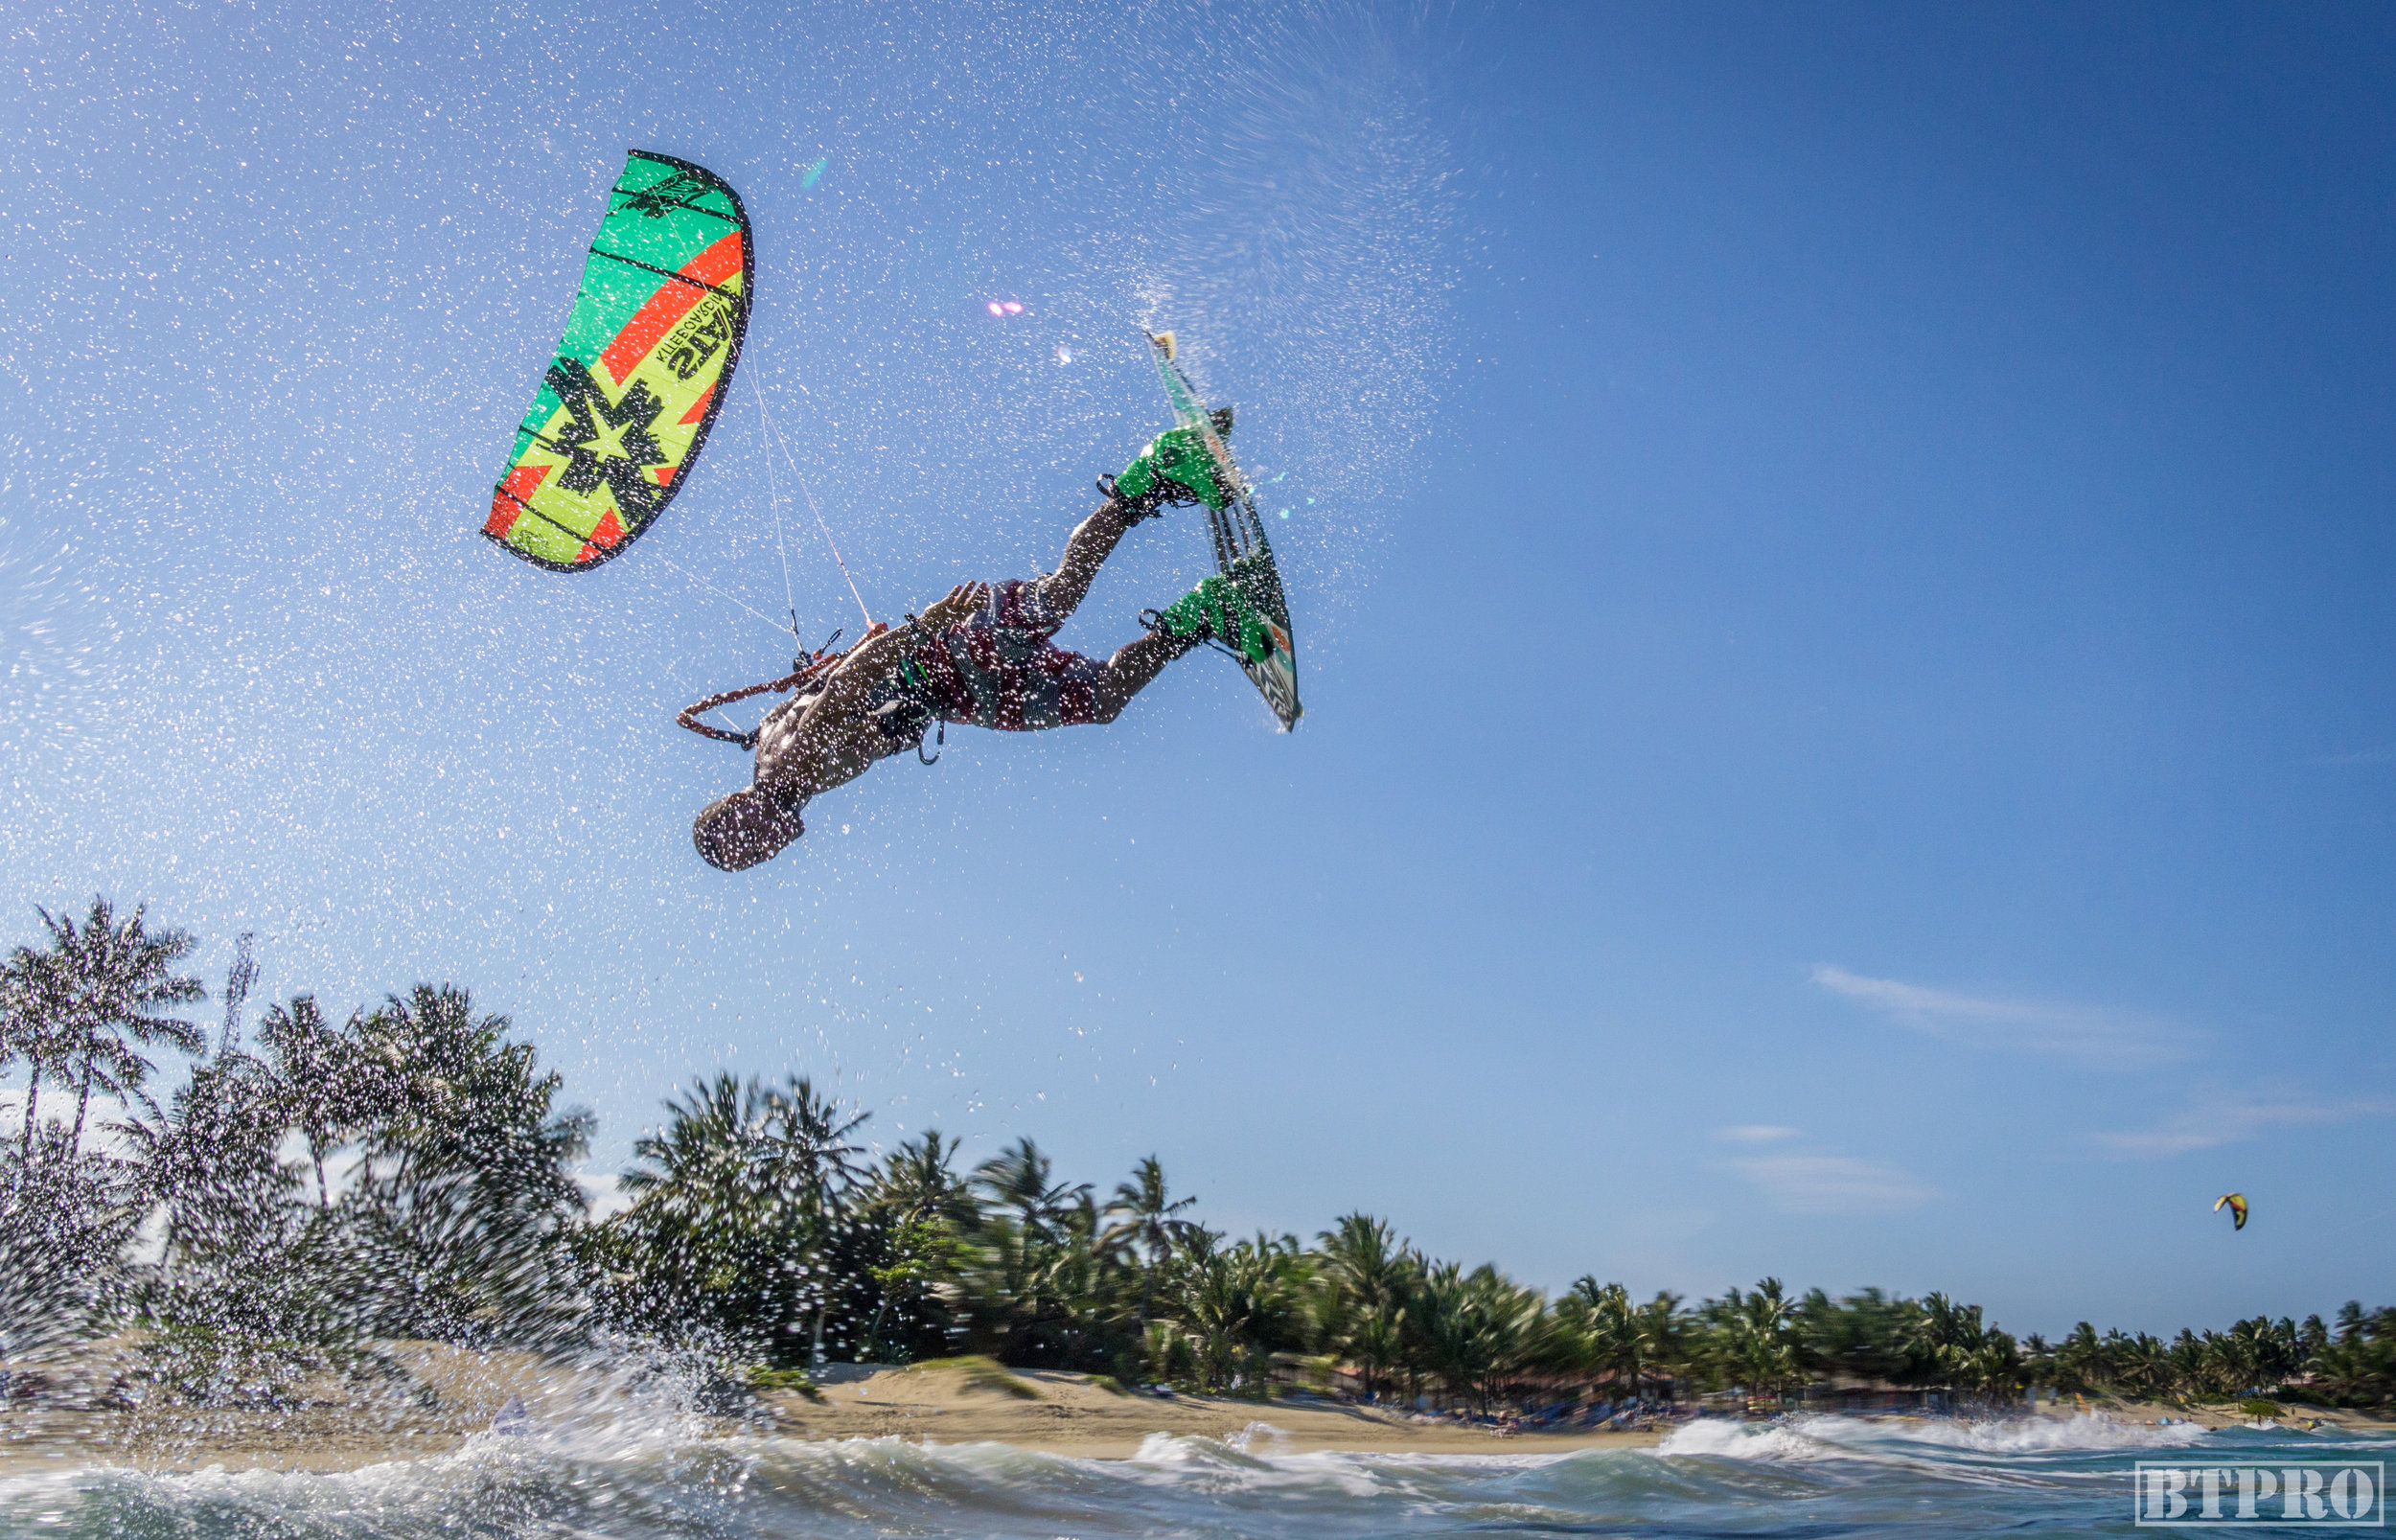 kitesurf, kitesurfing, kiteboard, kiteboarding, kitesurf photography, master of the ocean, master of the ocean 2016